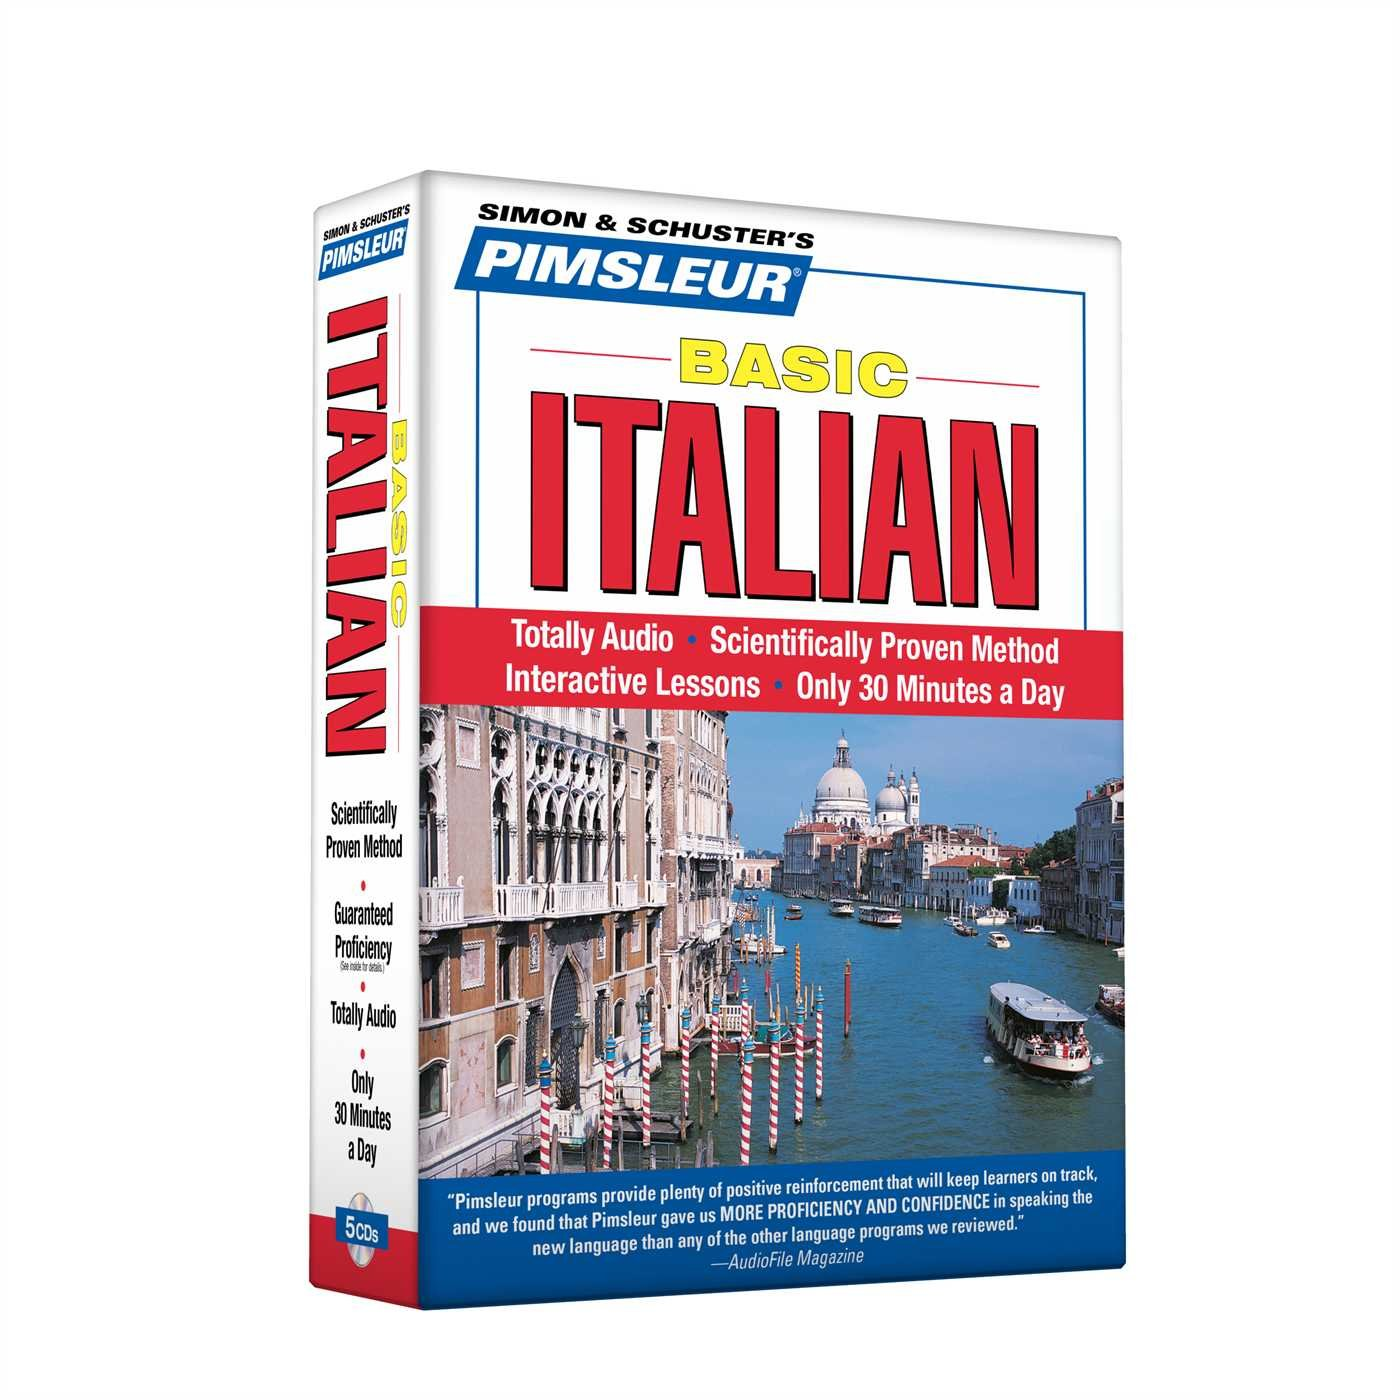 Pimsleur Italian Basic Course - Level 1 Lessons 1-10 CD: Learn to Speak and Understand Italian with Pimsleur Language Programs by Brand: Pimsleur